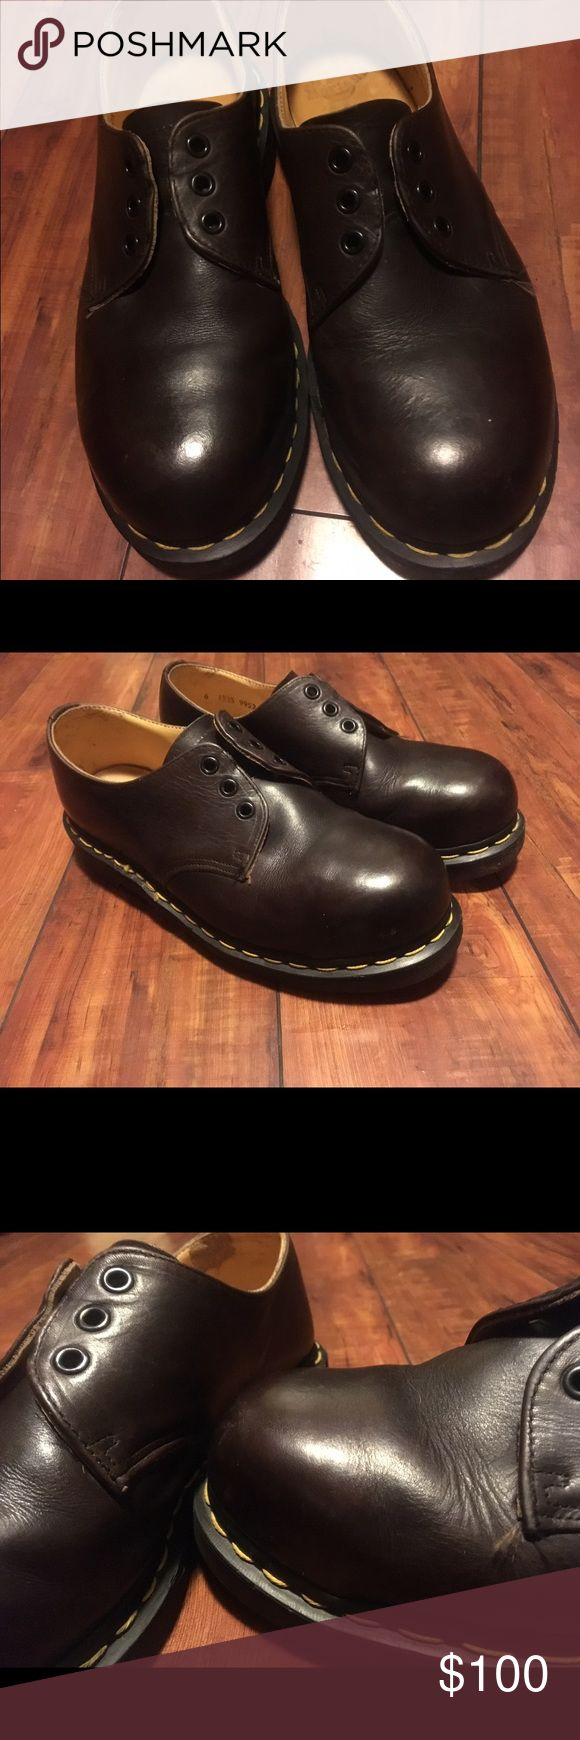 Steel Toe Doc Martens! Vintage England These are so amazing!  Vintage, made in England, the real deal! Steel toe originals are hard to find, so don't miss out! These are some sweet shoes! Dark brown, good shape. Newly polished and ready to wear. Dr. Martens Shoes Oxfords & Derbys